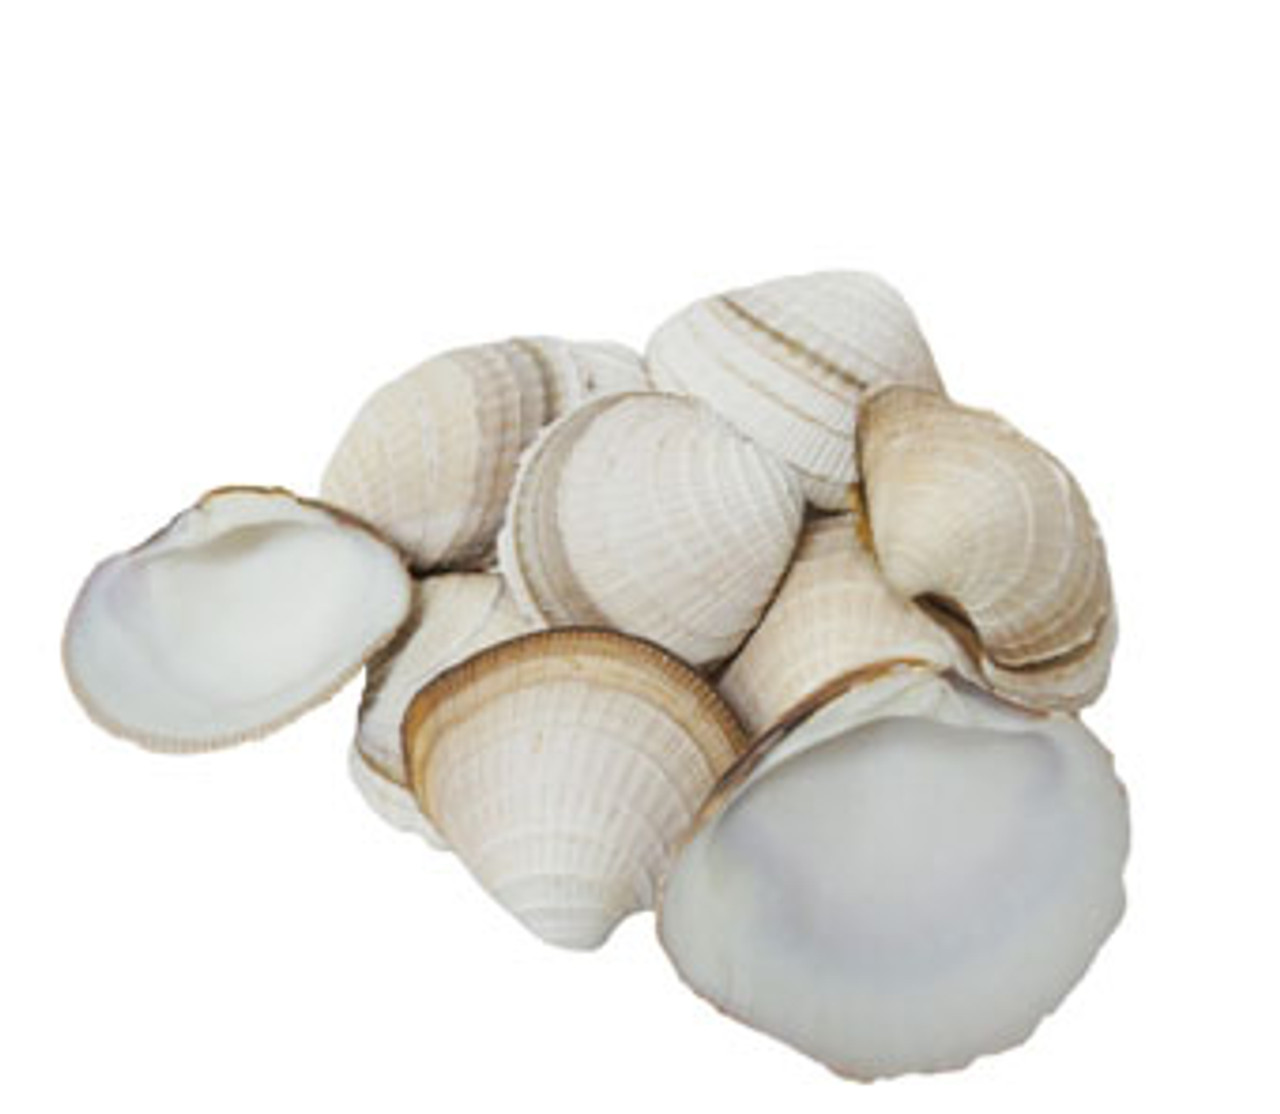 CHEENA CLAM-LB (ASS'T. SIZES)